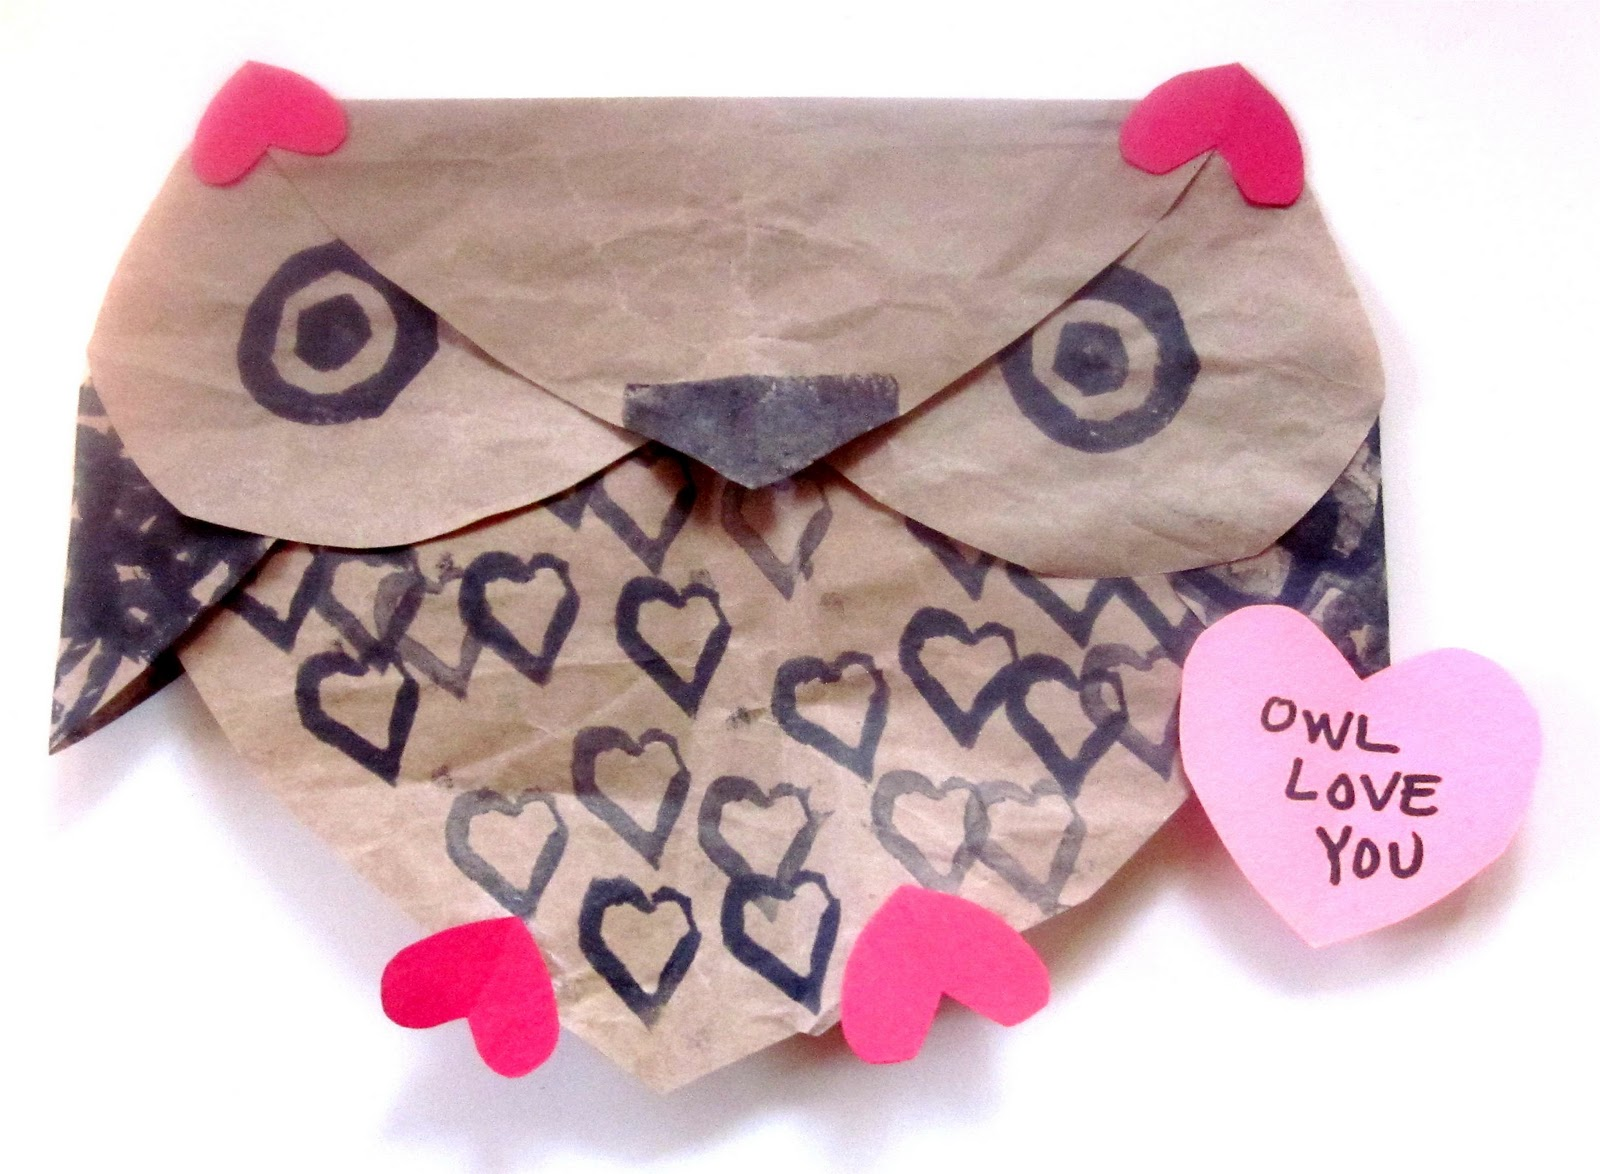 Mama S Little Muse Owl Love You Heart Owl Kids Craft For Valentine S Day